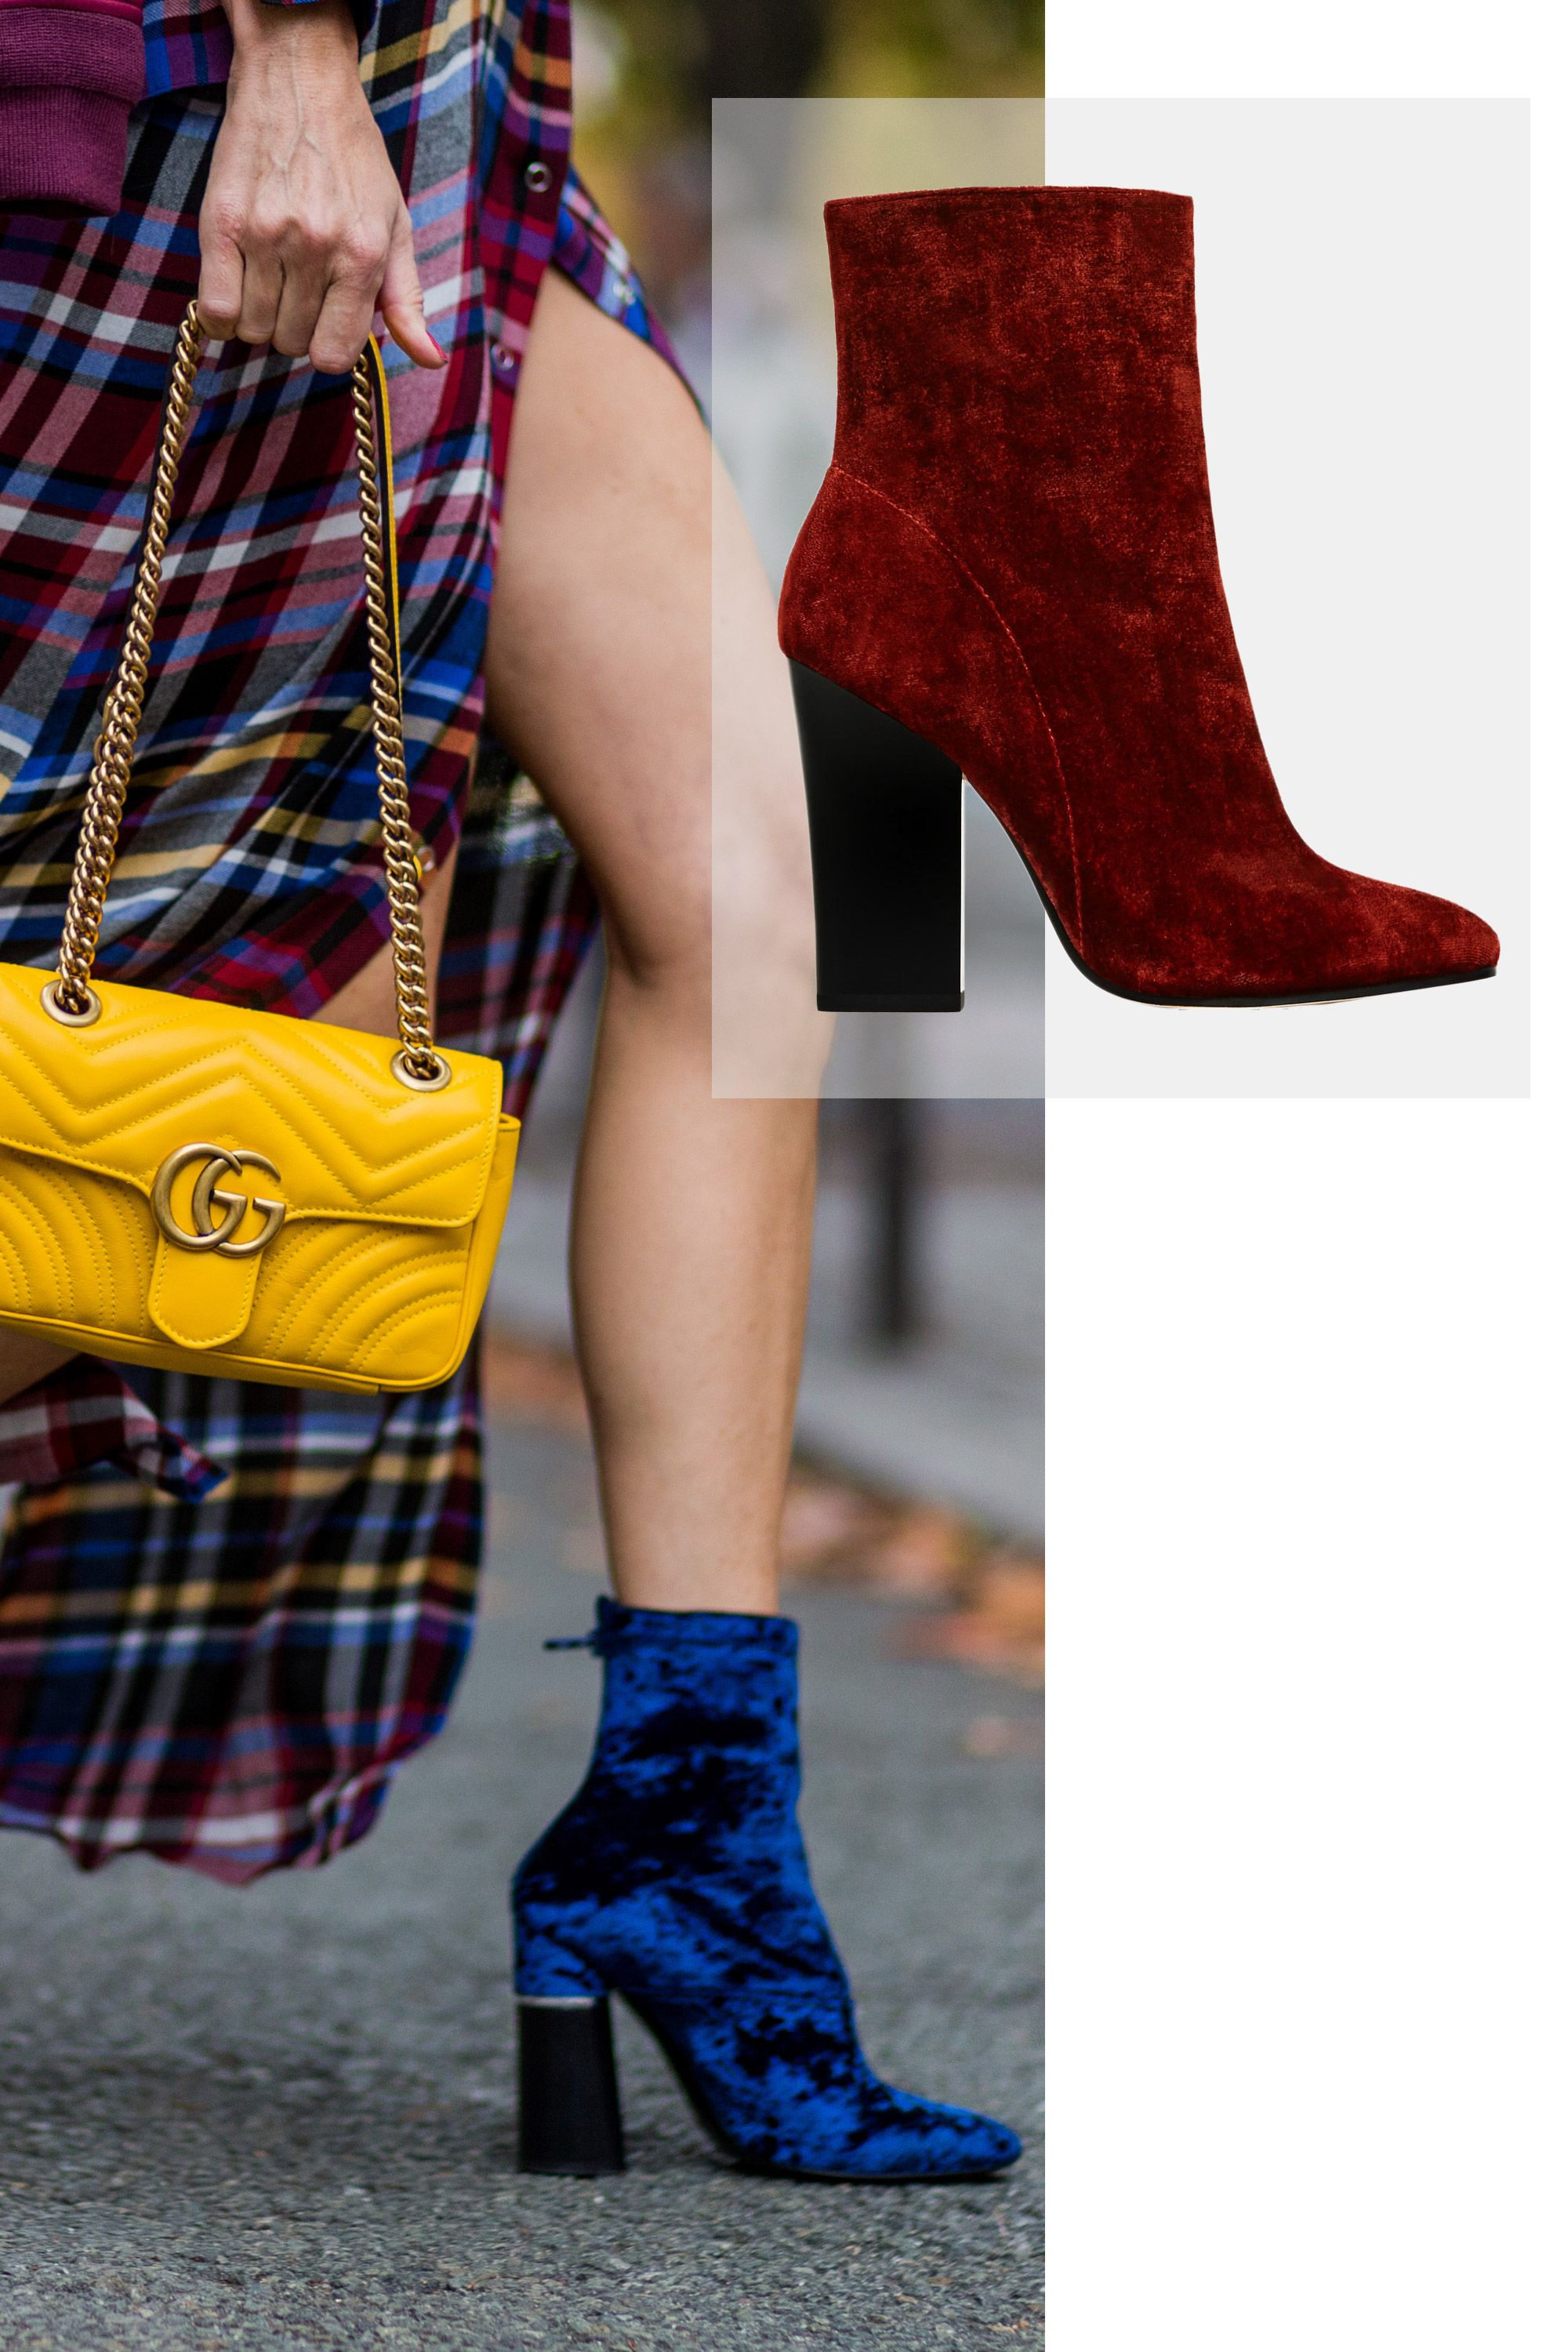 """<p>""""I've been seeing a lot of heavy fabrics for accessories, and velvet seems to be the material of choice,"""" says Rajni Lucienne Jacques, a creative consultant based in Brooklyn. """"A lot of girls are rocking velvet booties in jewel colors. They are what I like to call sock booties with a slight point—it's pretty much the Yeezy effect.""""</p><p><em data-redactor-tag=""""em"""" data-verified=""""redactor"""">Zara Velvet High Heel Ankle Boots, $119&#x3B; </em><a href=""""http://www.zara.com/us/en/woman/shoes/ankle-boots/velvet-high-heel-ankle-boots-c288001p3821526.html"""" target=""""_blank"""" data-tracking-id=""""recirc-text-link""""><em data-redactor-tag=""""em"""" data-verified=""""redactor"""">zara.com</em></a></p>"""